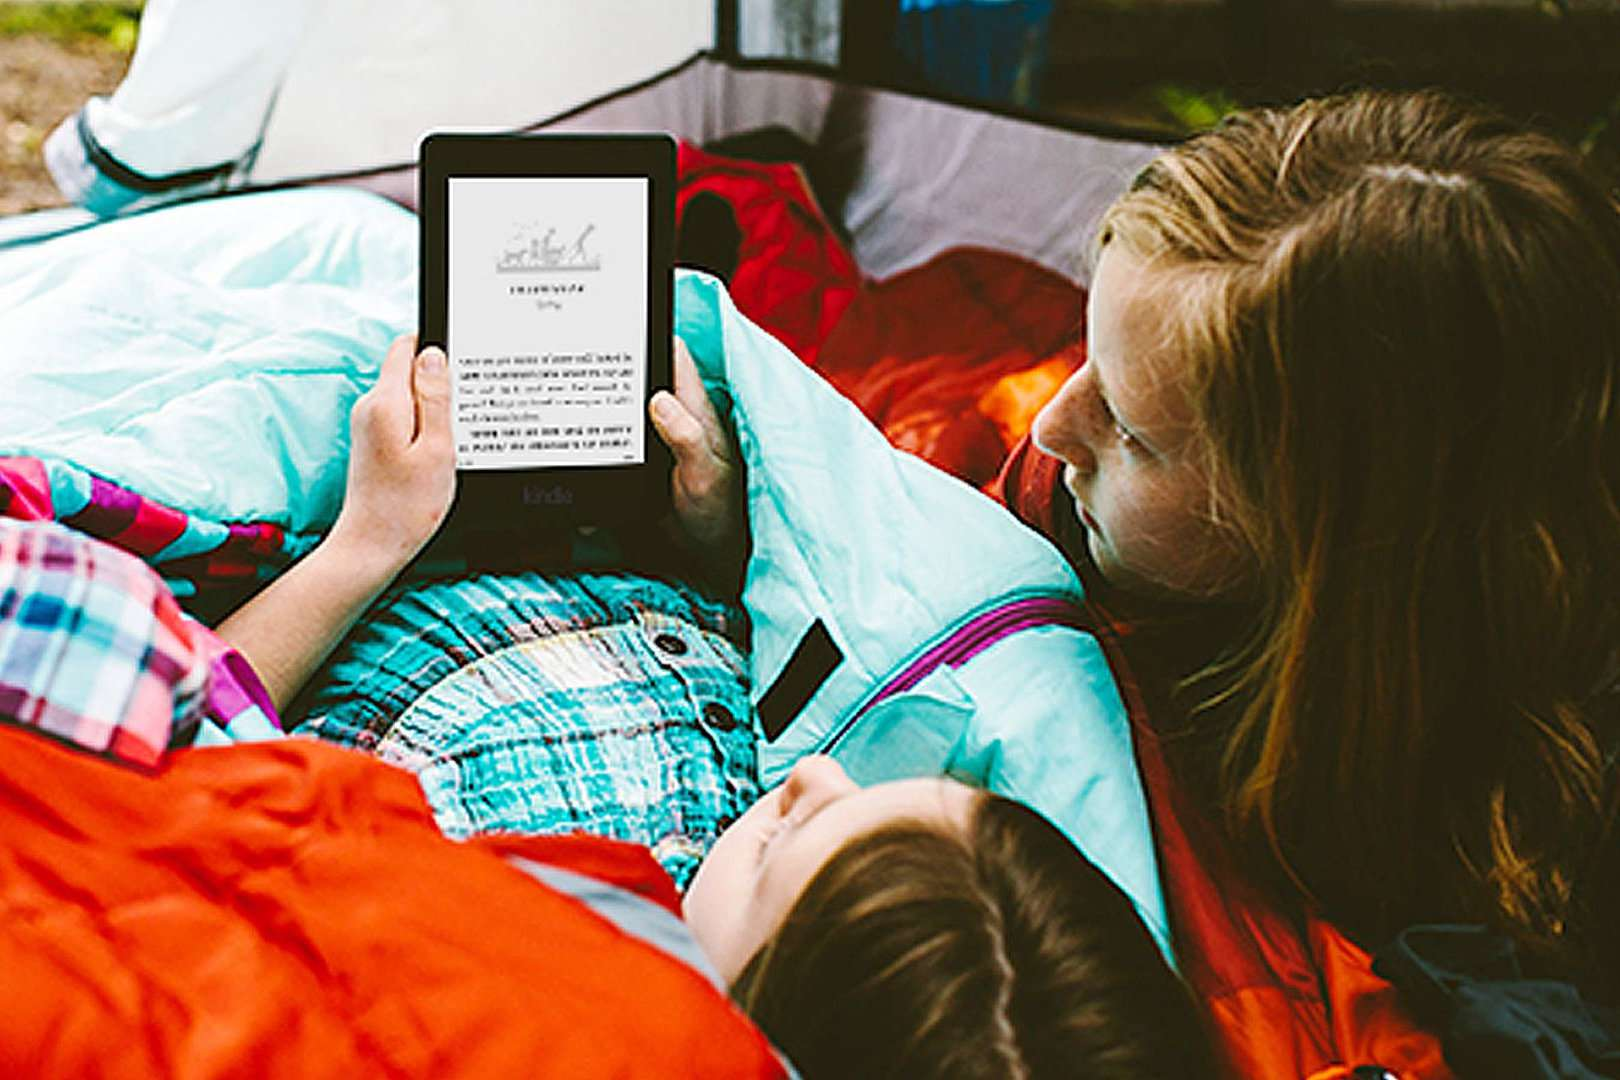 Campers reading on a Kindle Paperwhite 2015